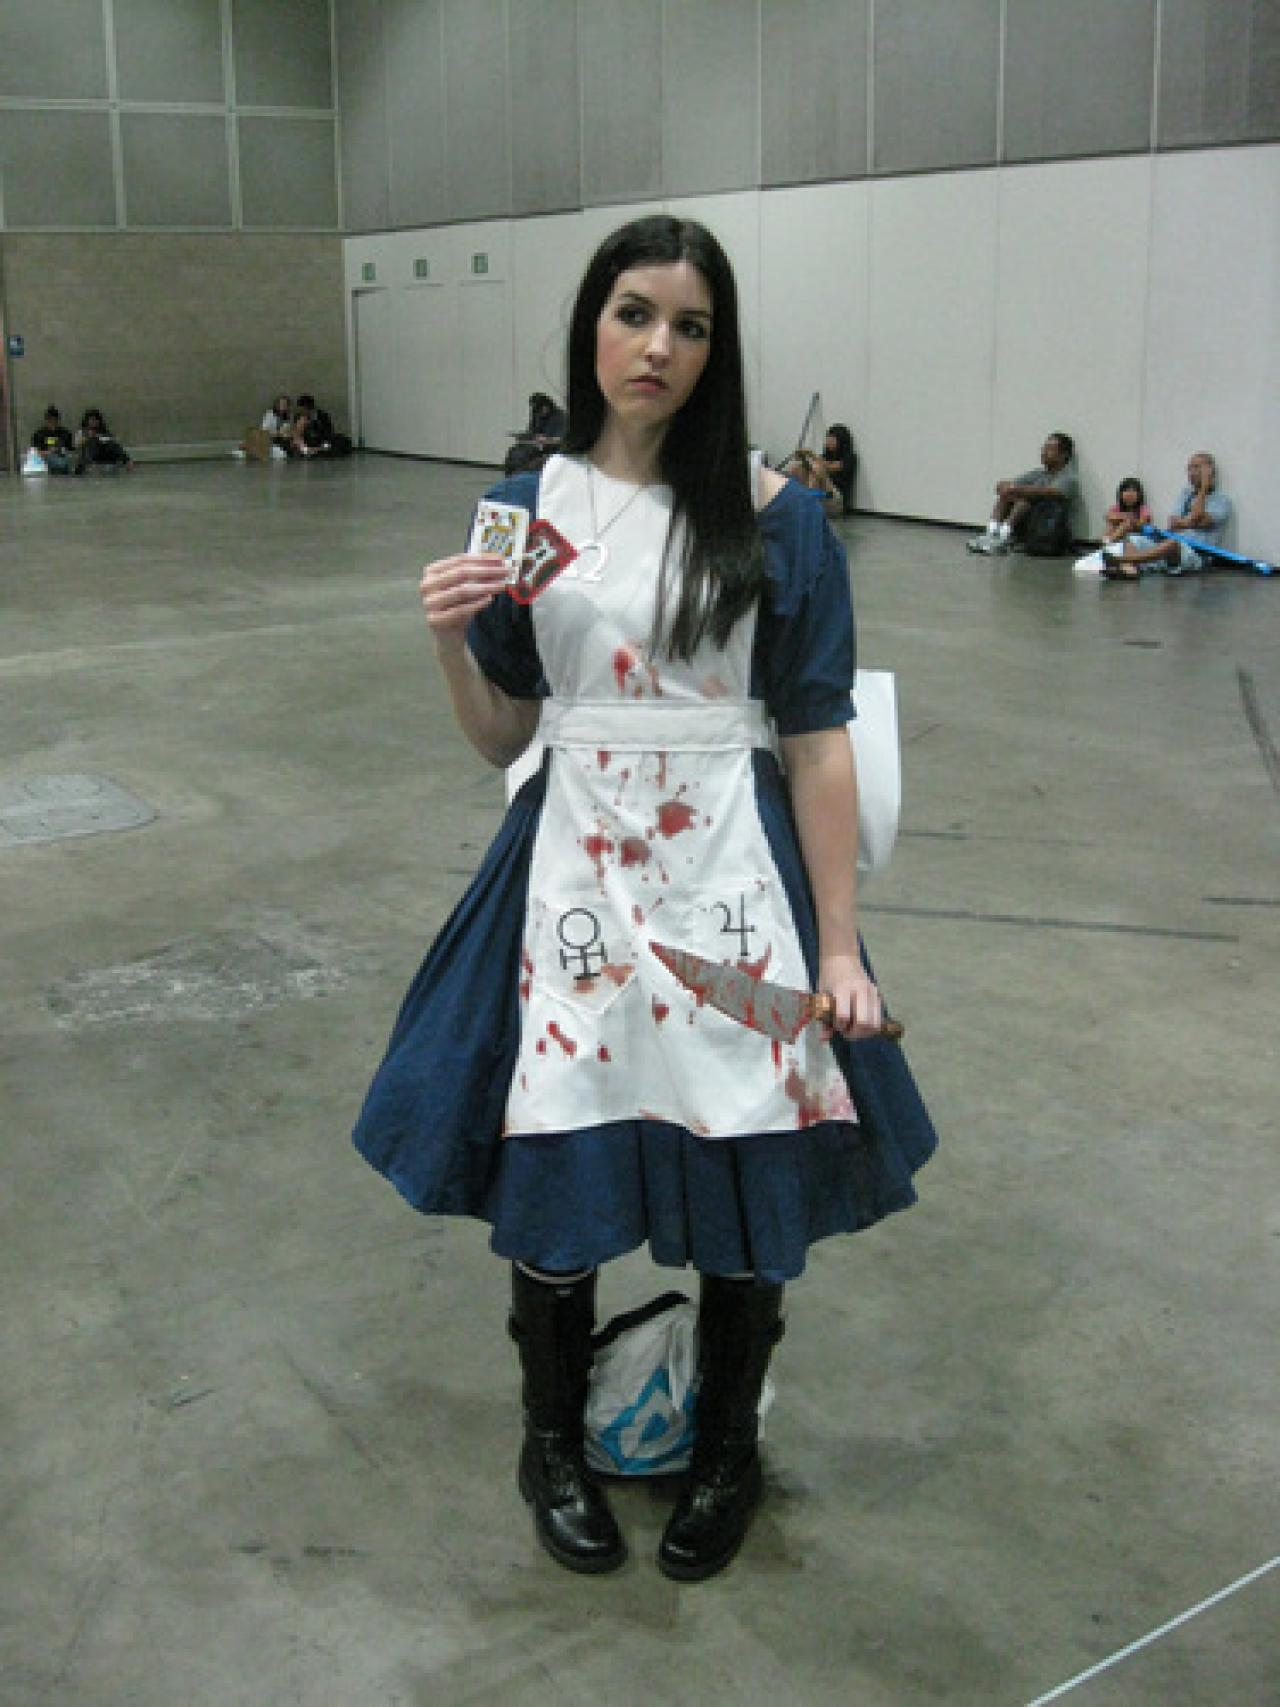 Gruesome Halloween costume ideas from 25 terrifying ...